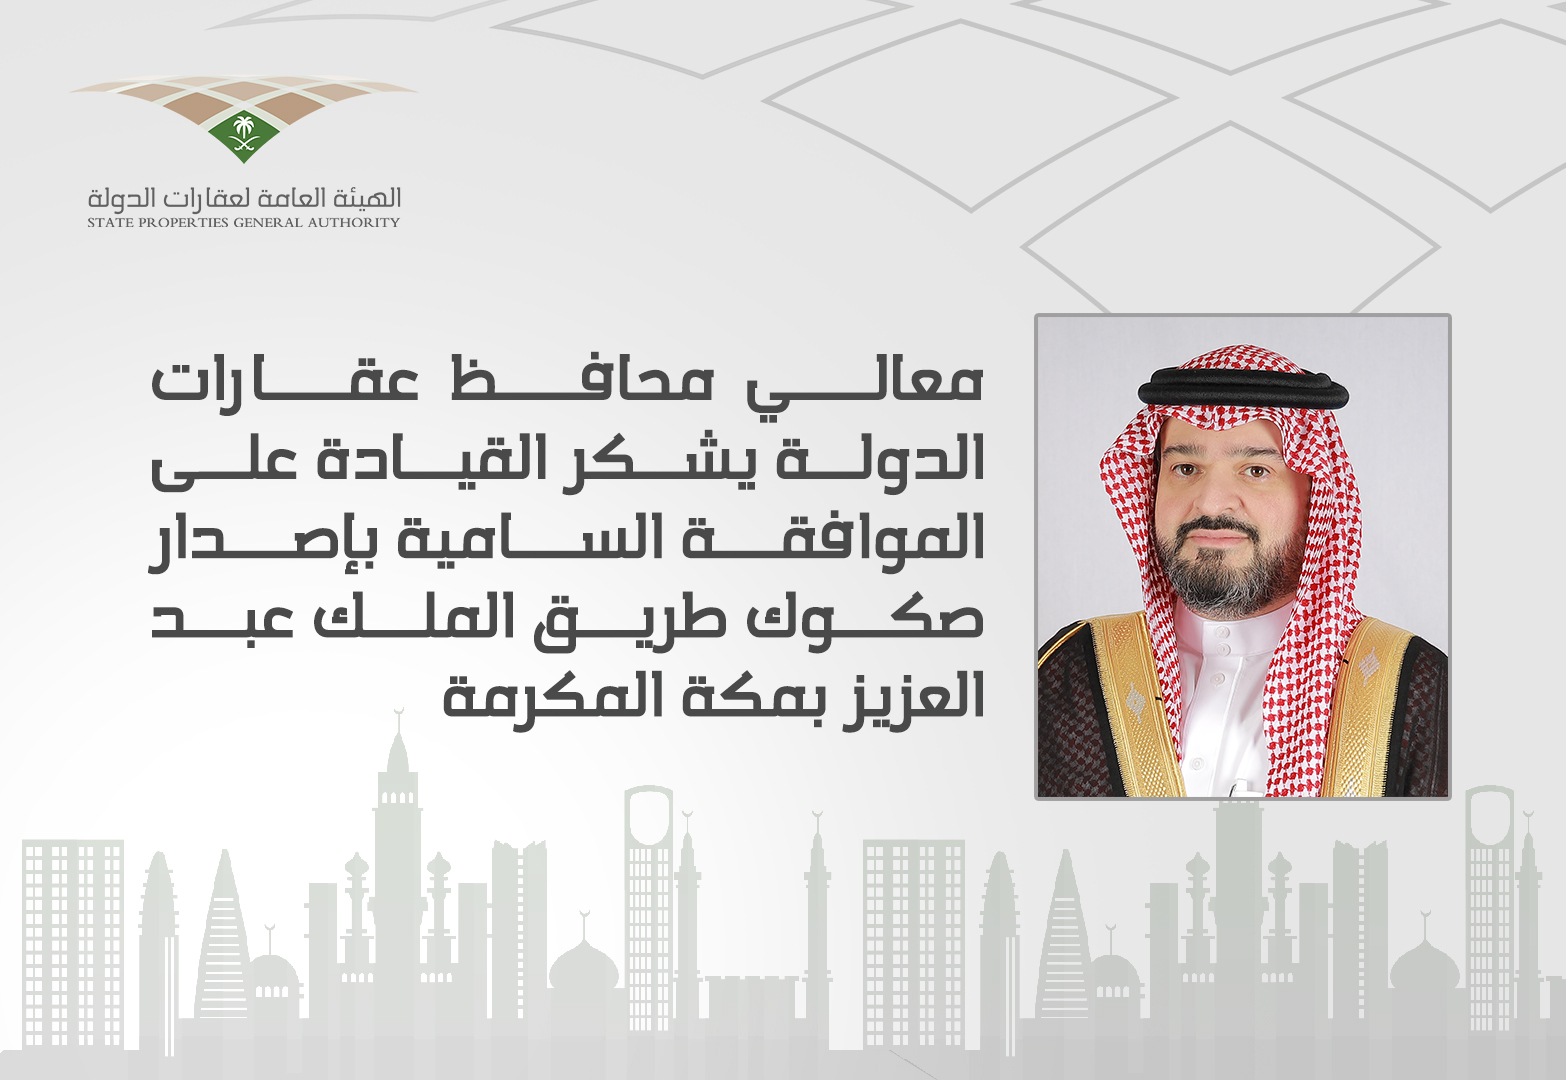 State Properties General Authority